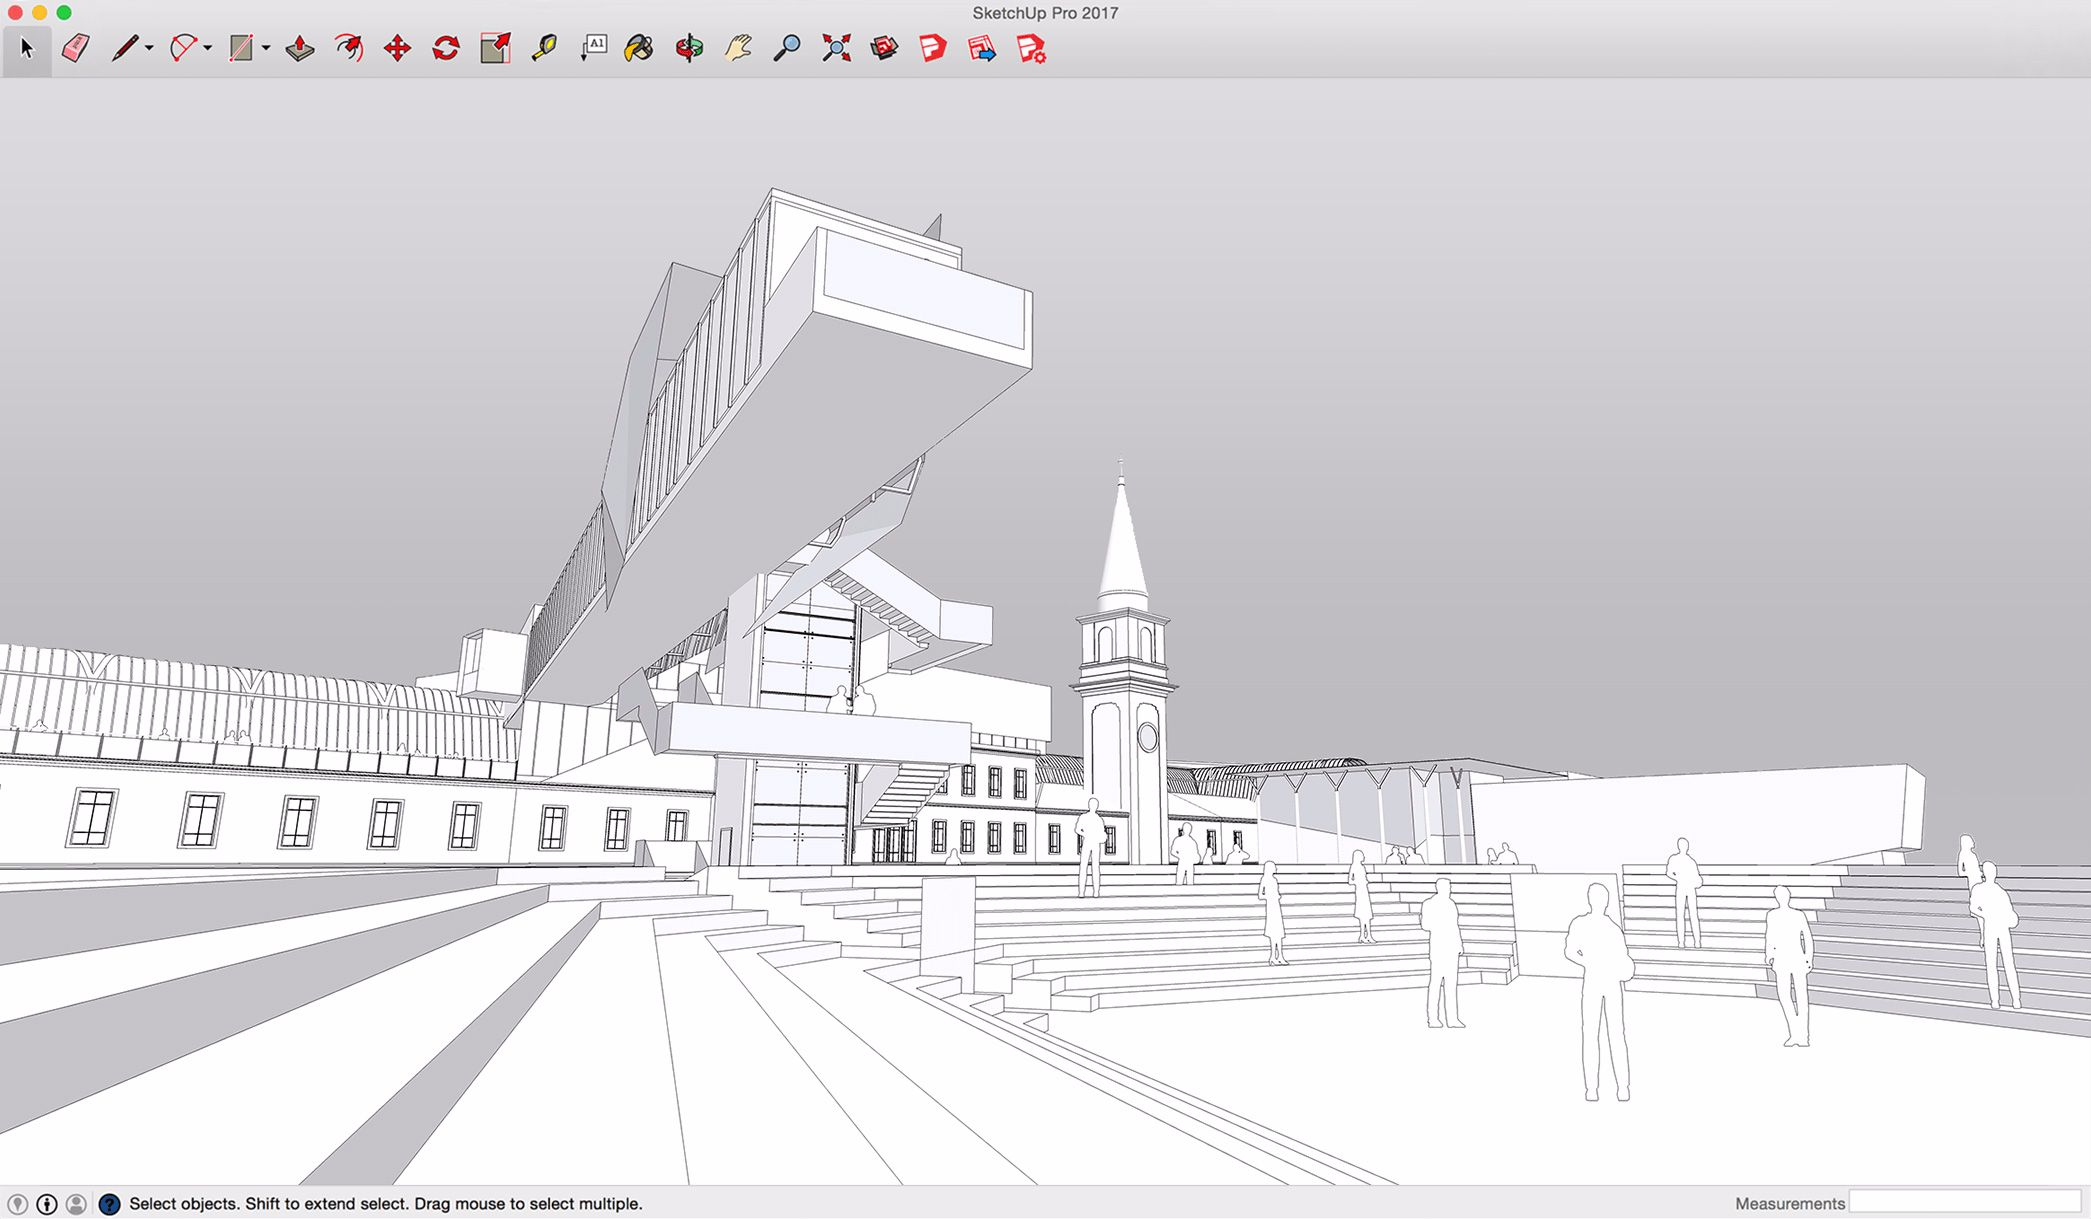 sketchup pro 2017 free download with crack 32 bit